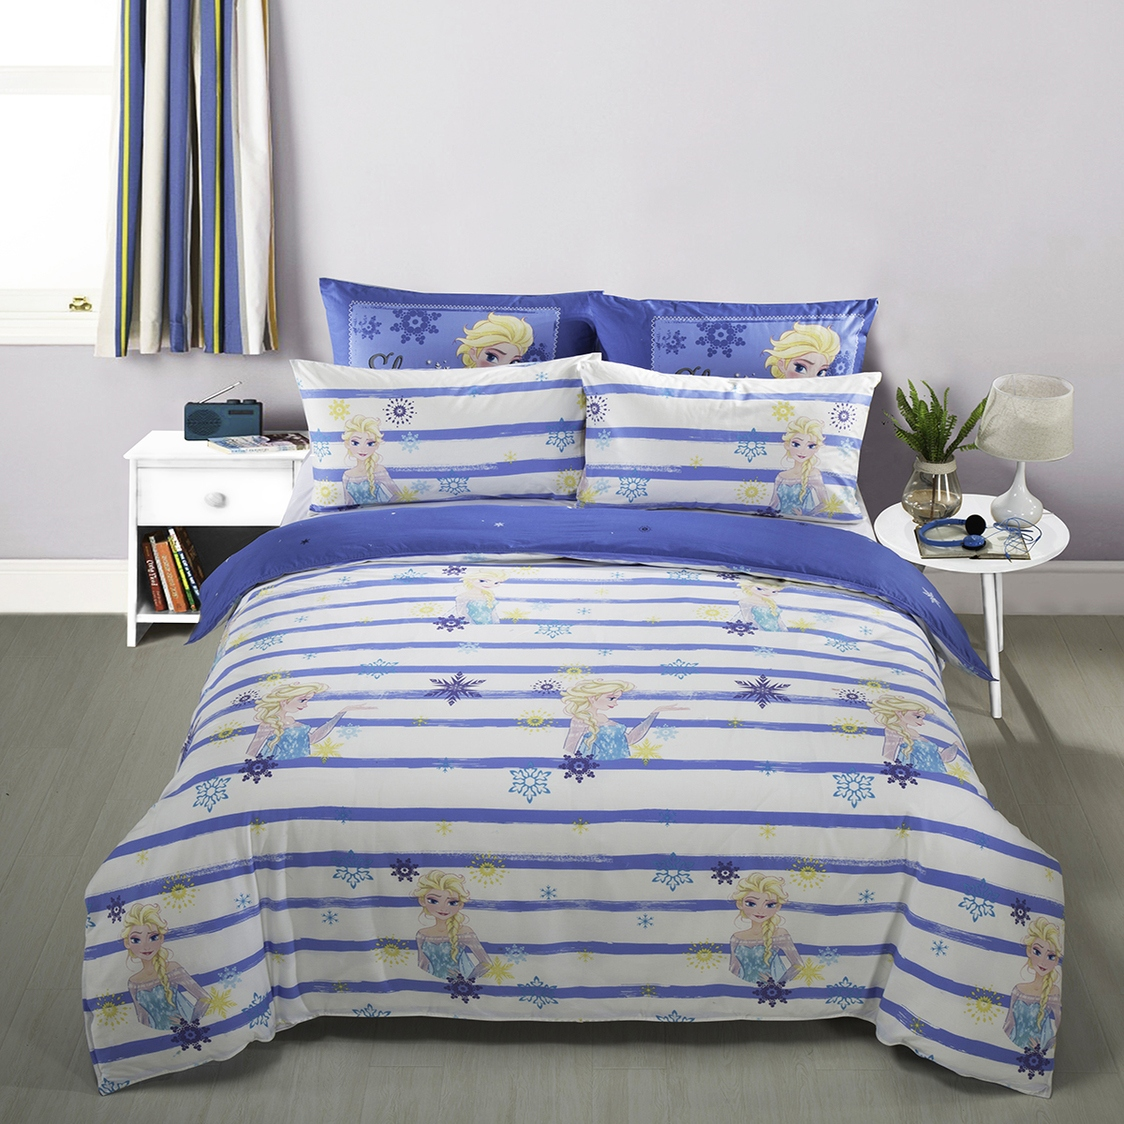 Summer Chill B Fitted Sheet Set